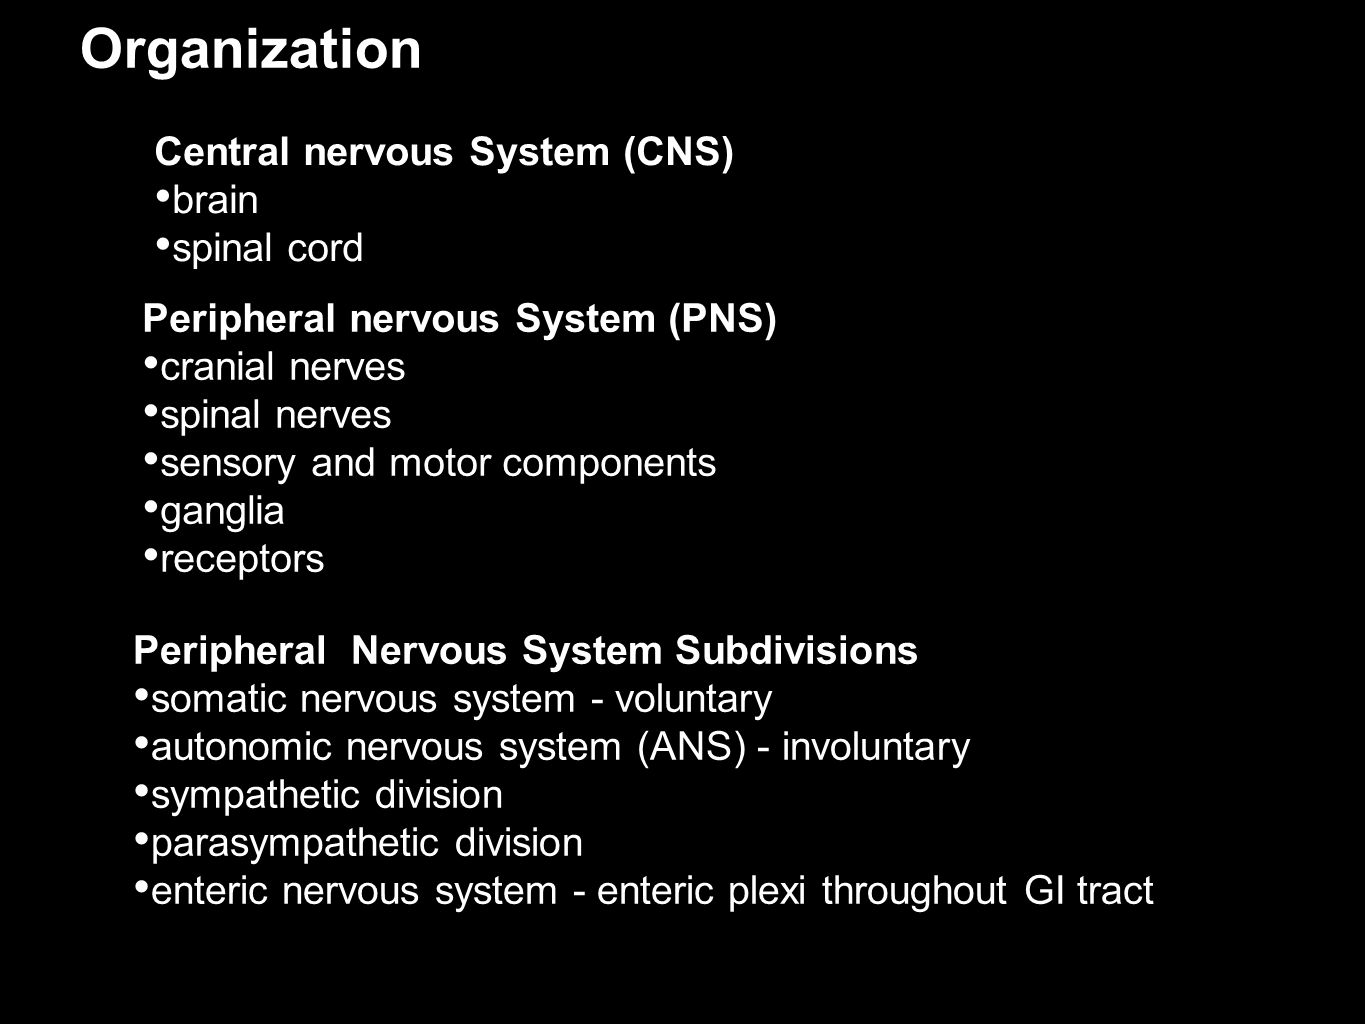 Organization Central nervous System (CNS) brain spinal cord Peripheral nervous System (PNS) cranial nerves spinal nerves sensory and motor components